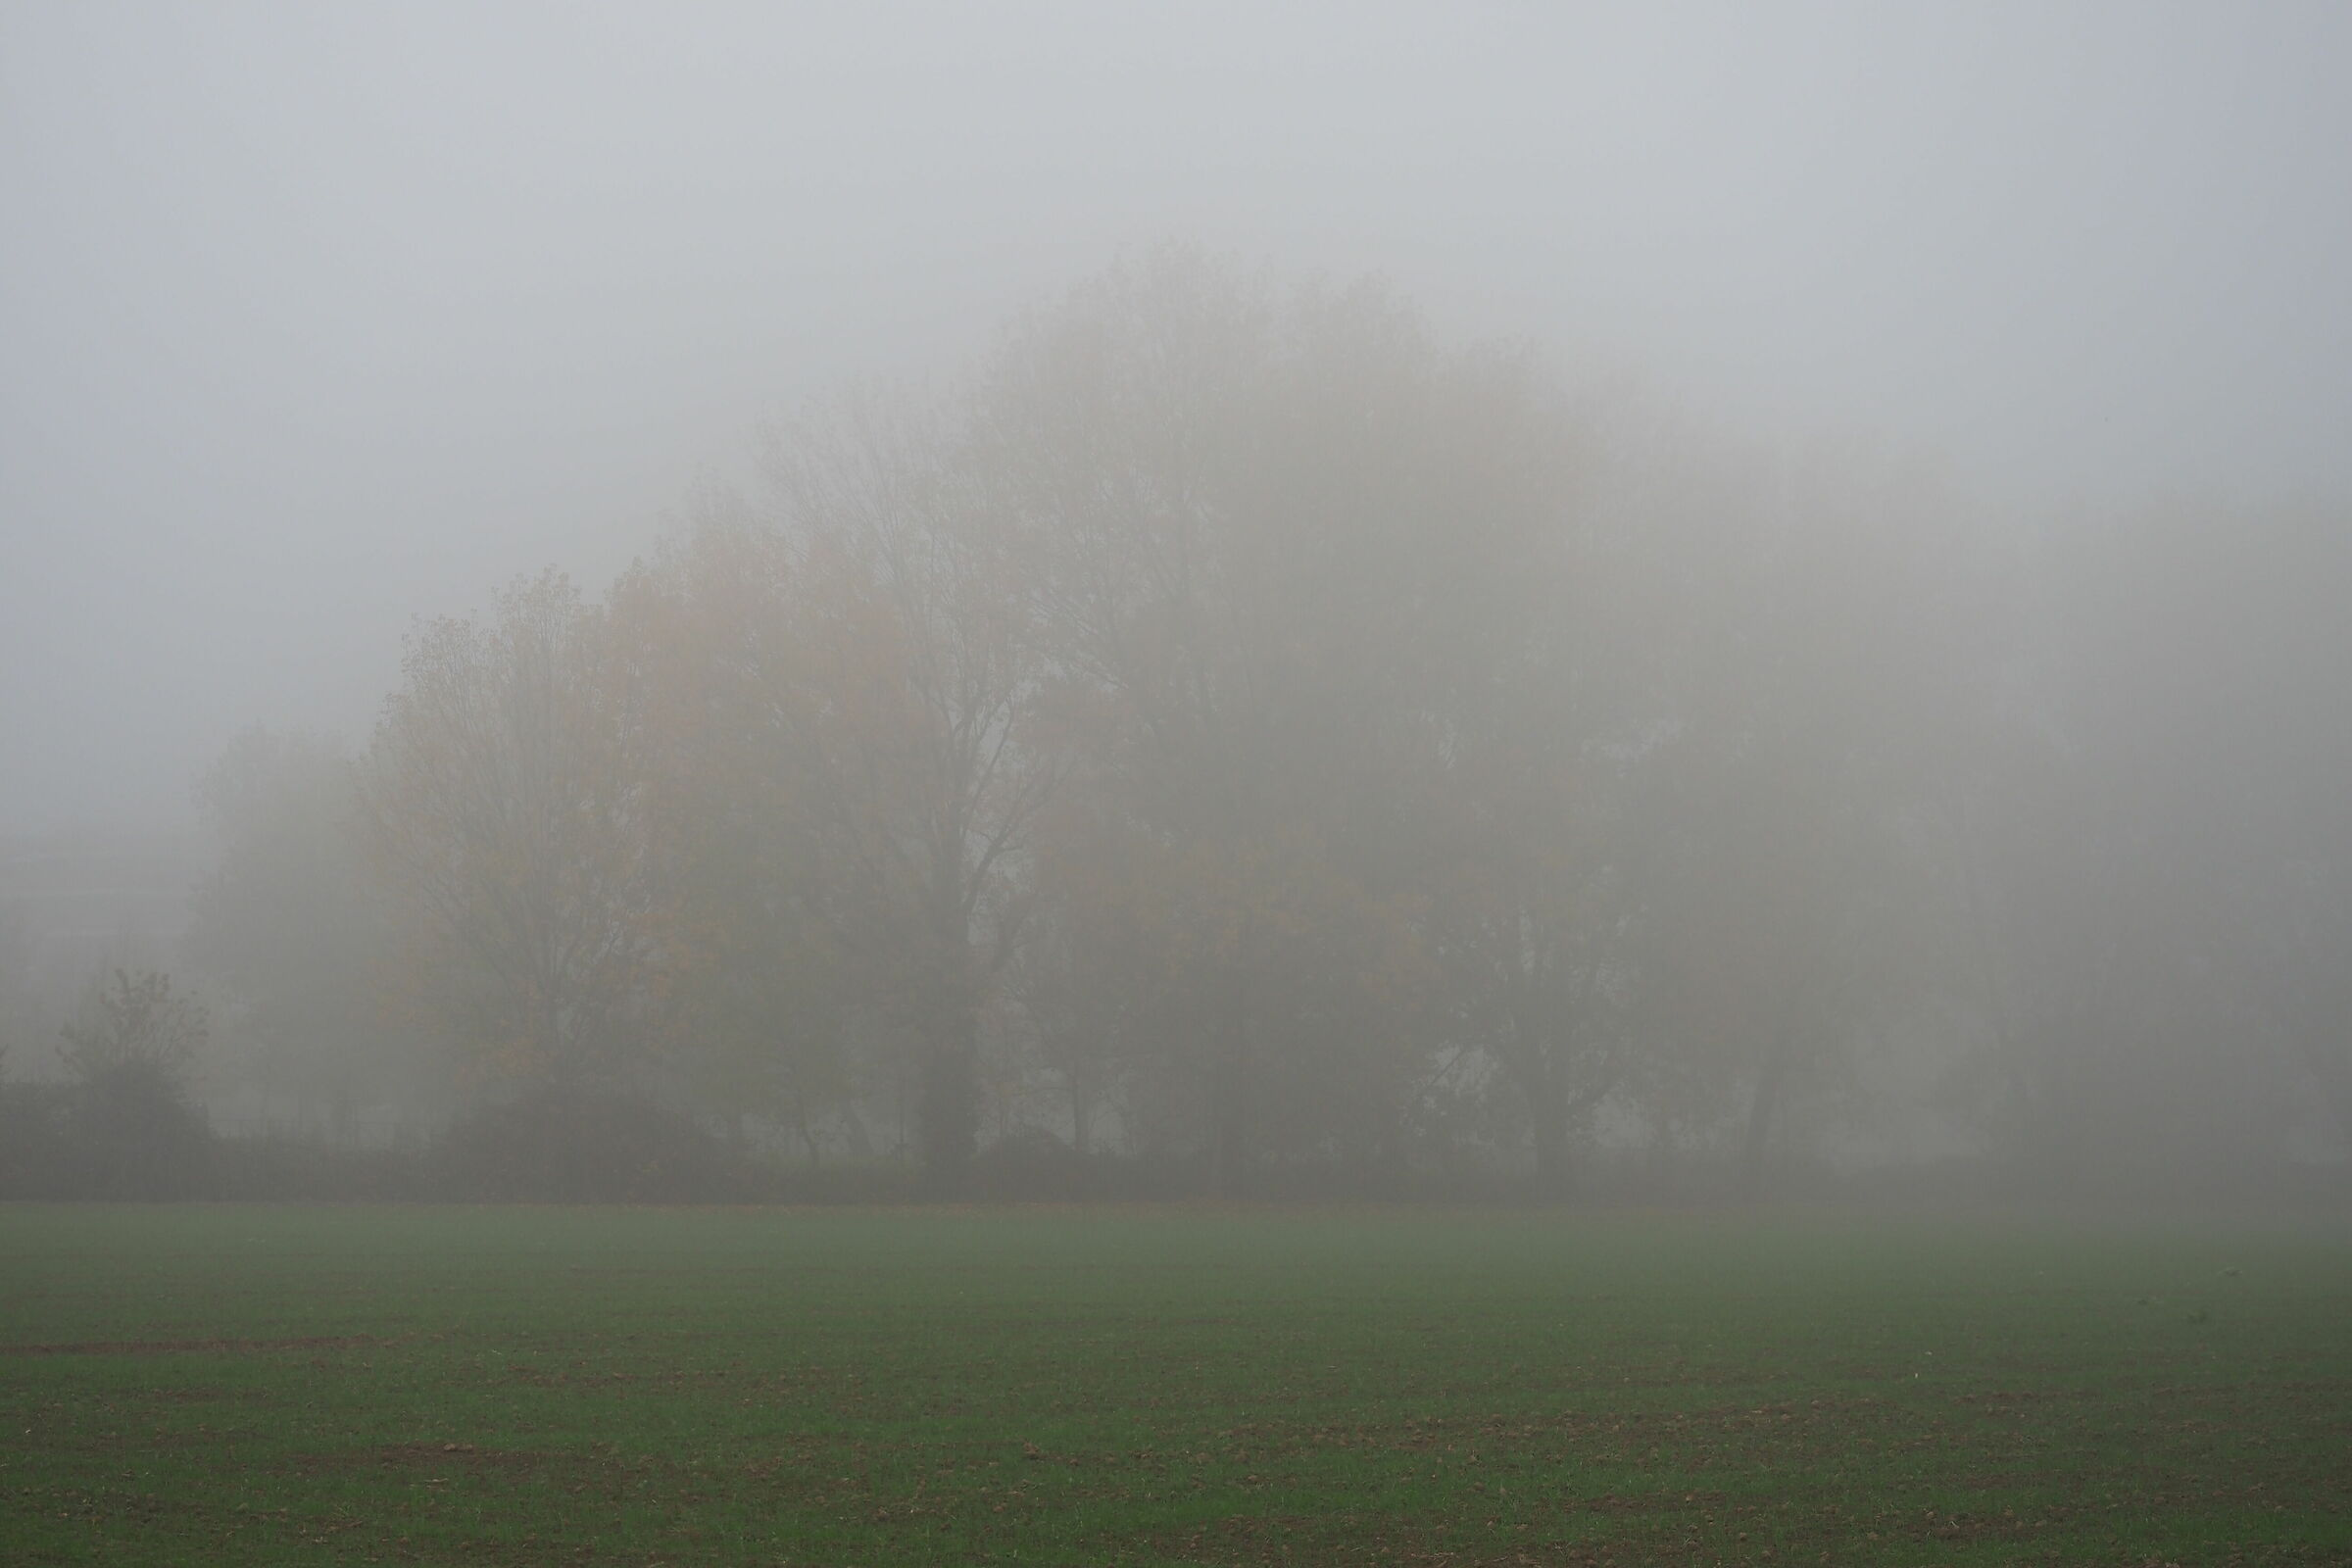 Sunday afternoon on the outskirts of Milan with fog...